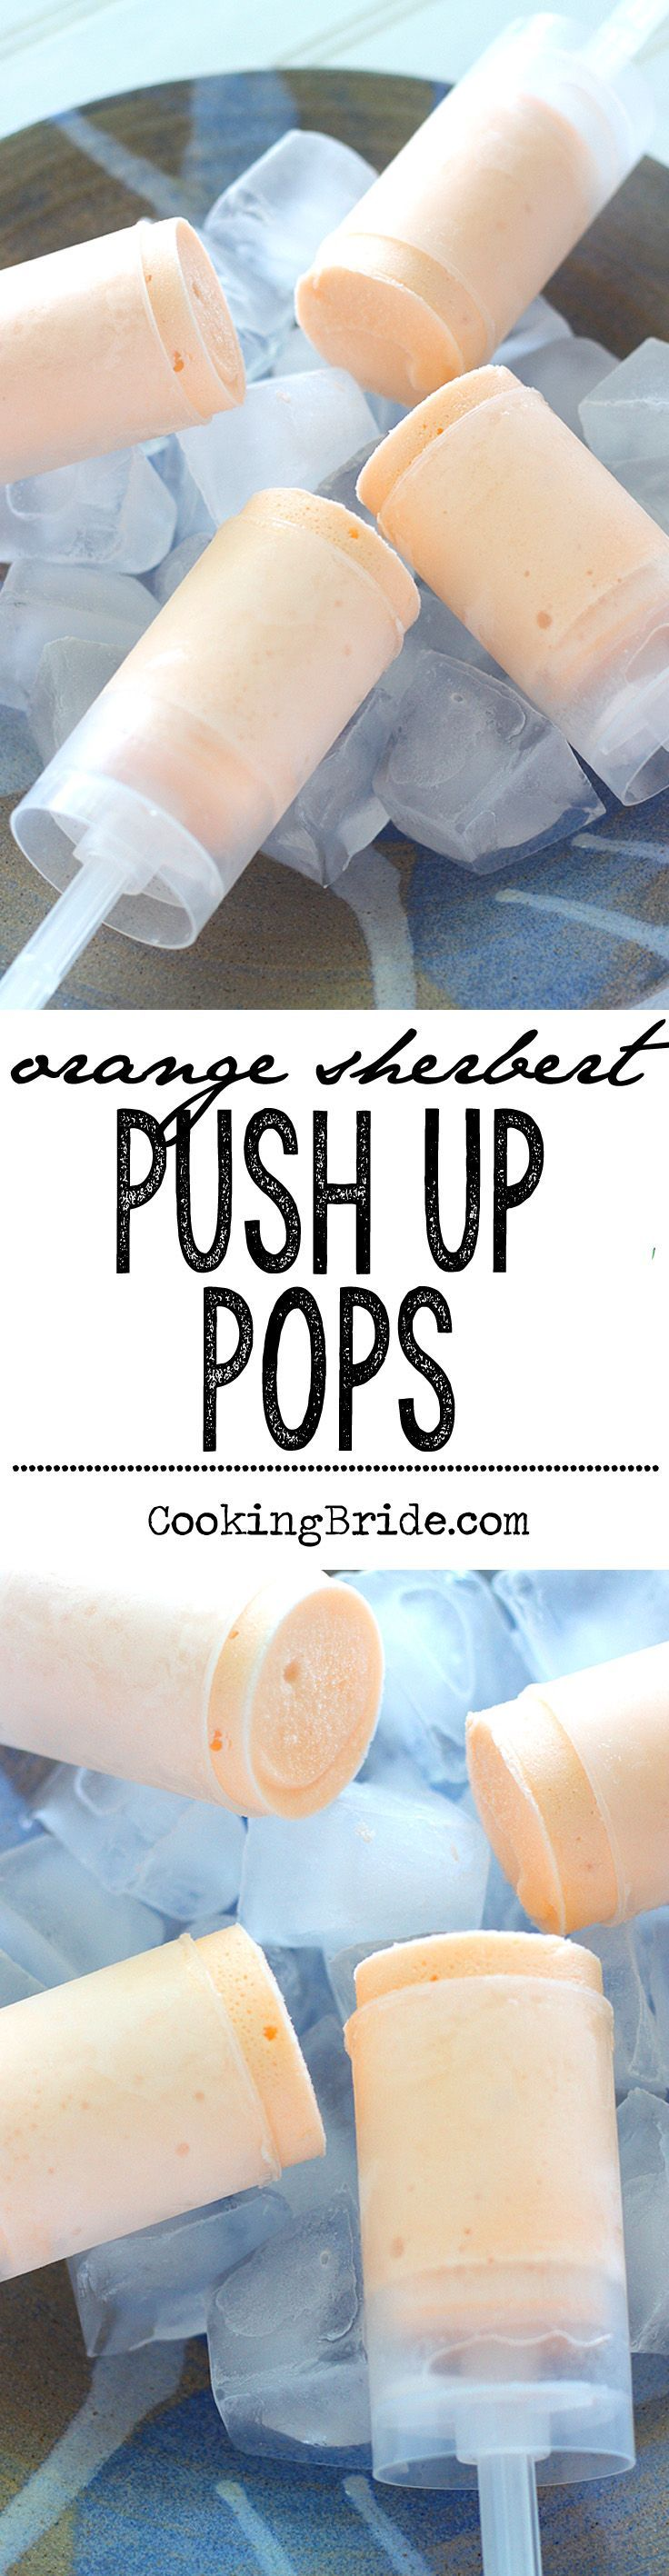 Make push up pops at home! This yummy, refreshing frozen sherbert treat only requires three ingredients!